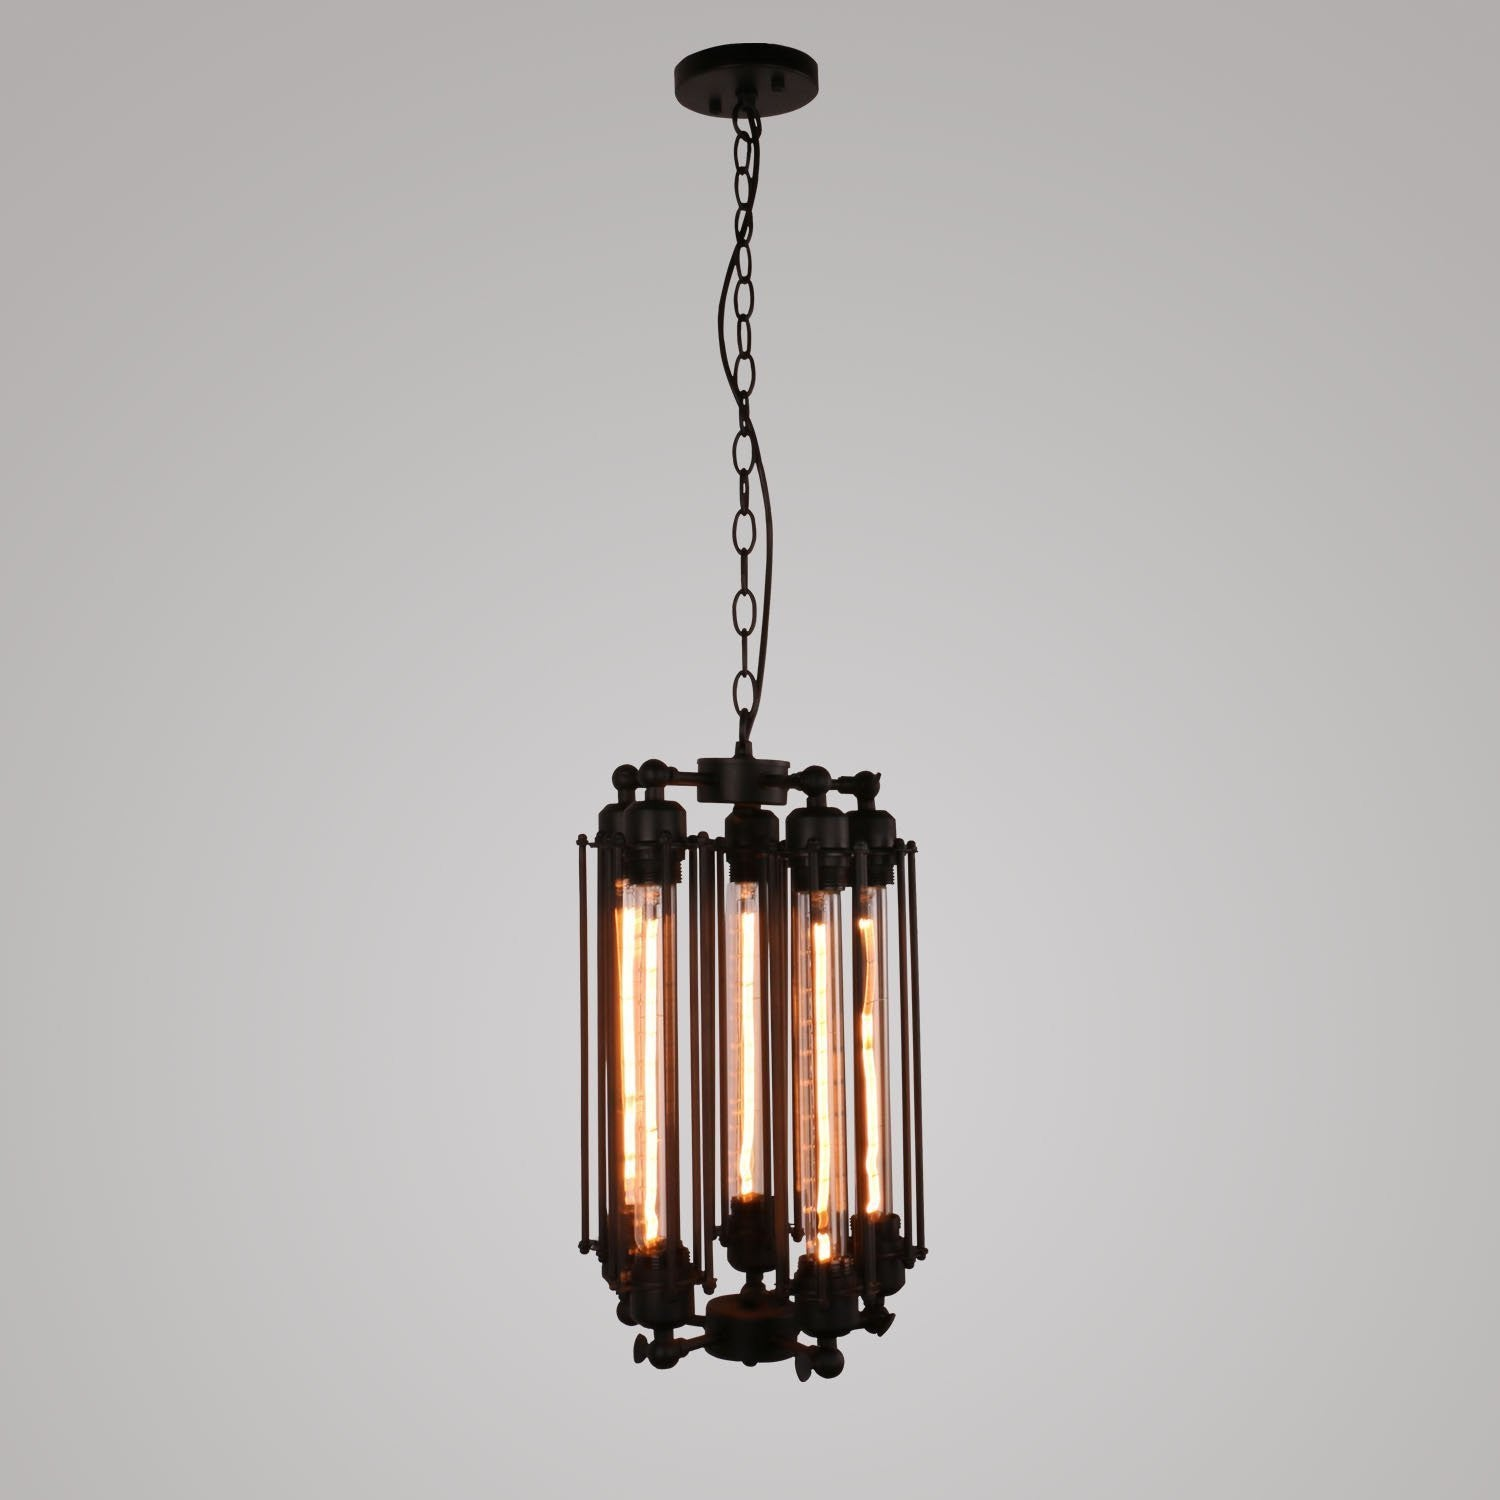 Unitary Brand Industrial Black Metal Large Tubular Multi Pendant Light with 5 E26 Bulb Sockets 200W Painted Finish